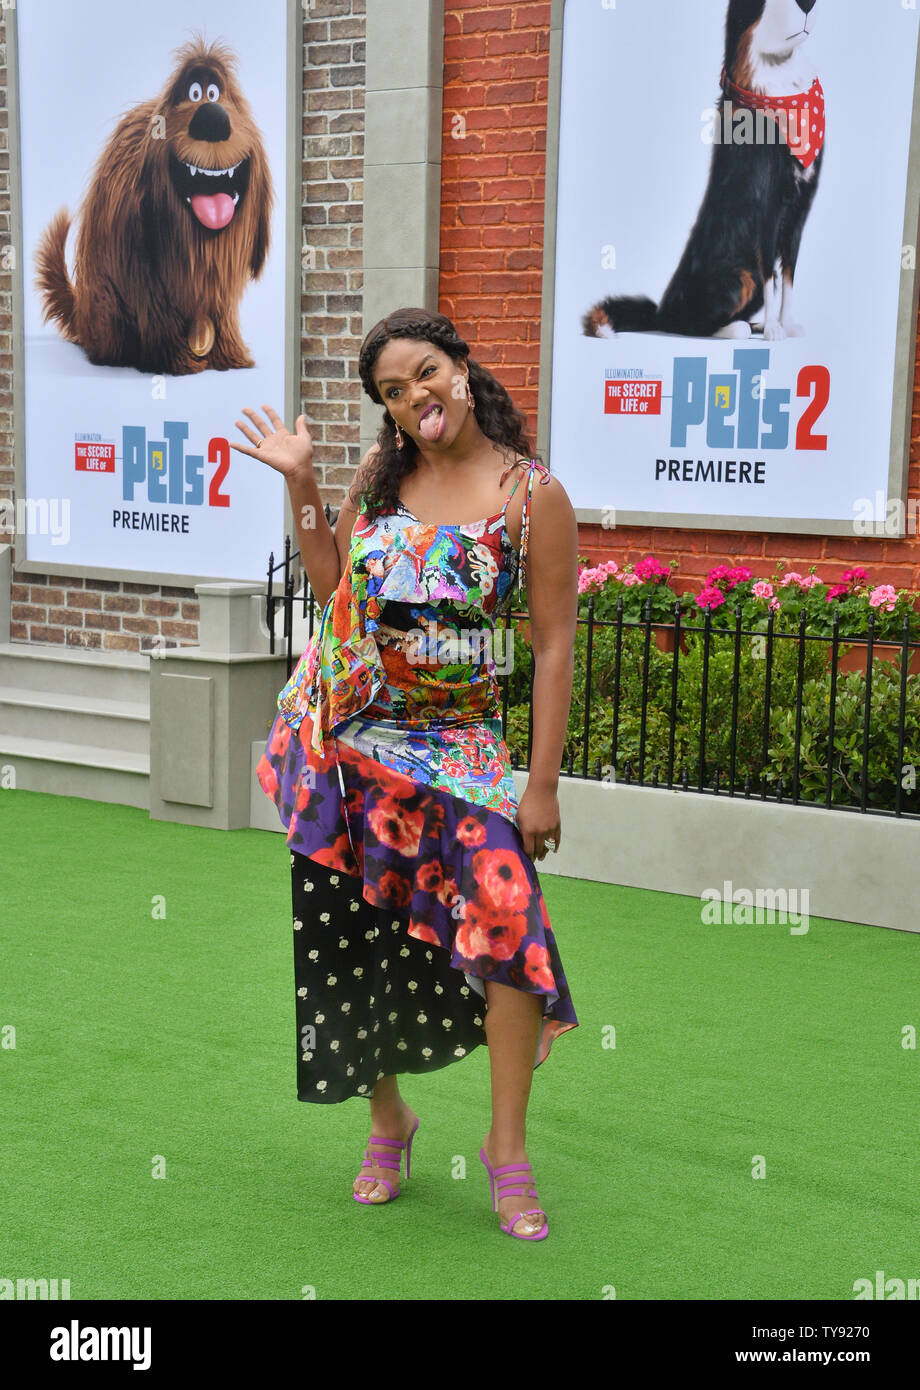 Cast Member Tiffany Haddish The Voice Of Daisy In The Animated Comedy The Secret Life Of Pets 2 Attends The Premiere Of The Film At The Regency Village Theatre In The Westwood